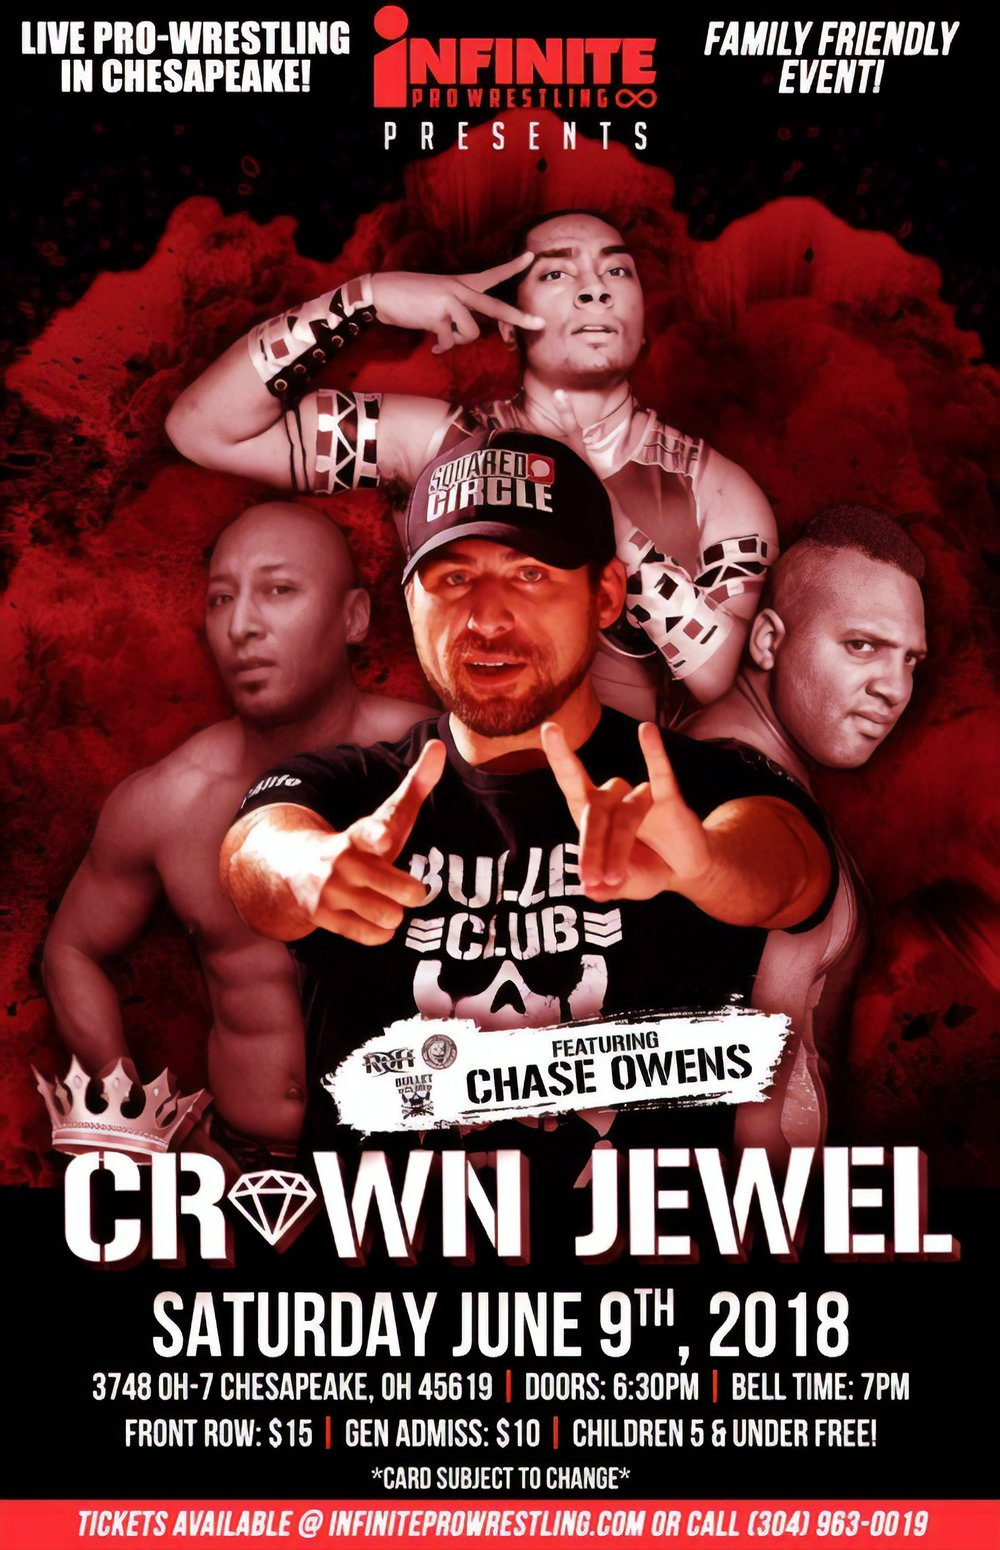 """June 9, 2018 Crown Jewel - Catch the original Crown Jewel event as Franco Varga defends the IPW World Heavyweight Championship against """"The Crown Jewel"""" Bullet Club member Chase Owens!"""